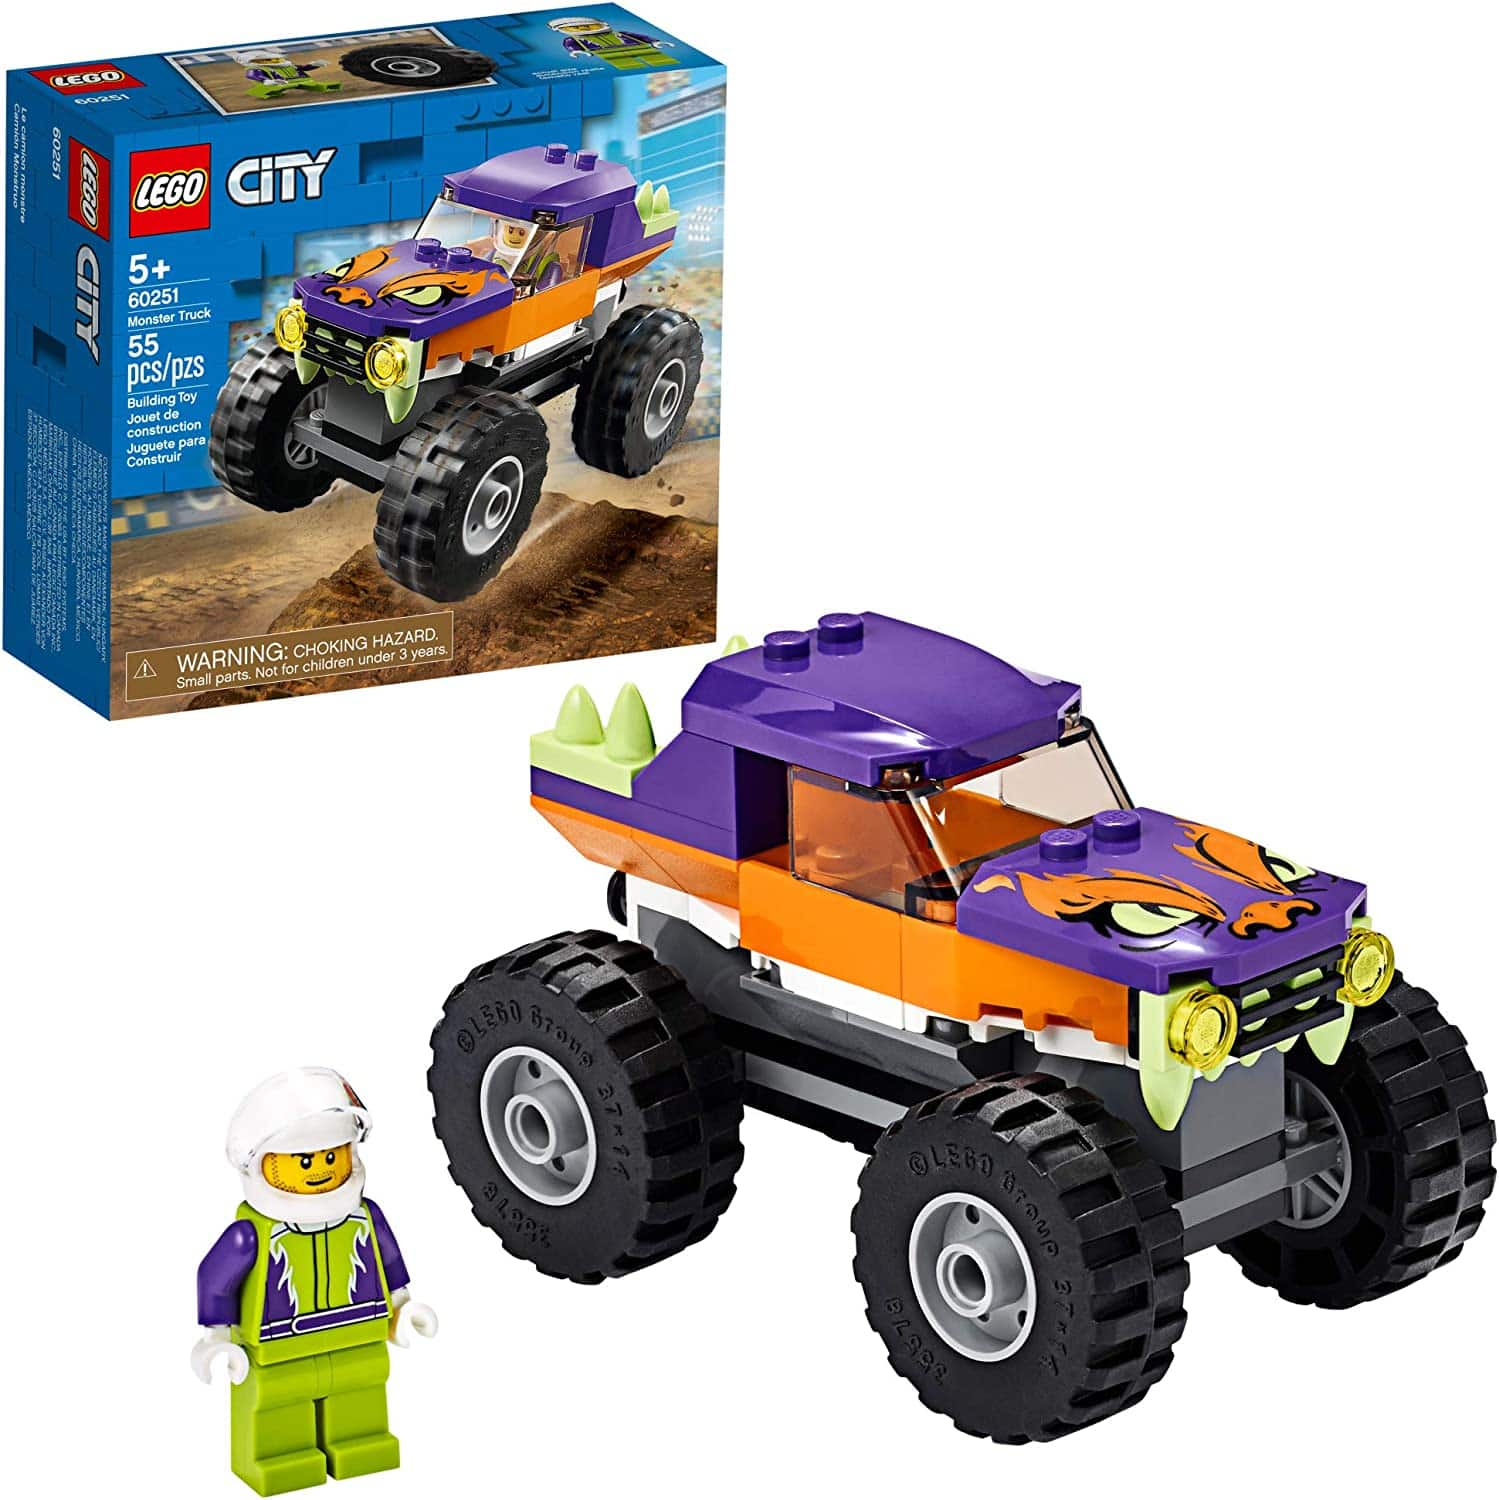 55-Piece LEGO City Monster Truck Building Set $8 at Amazon